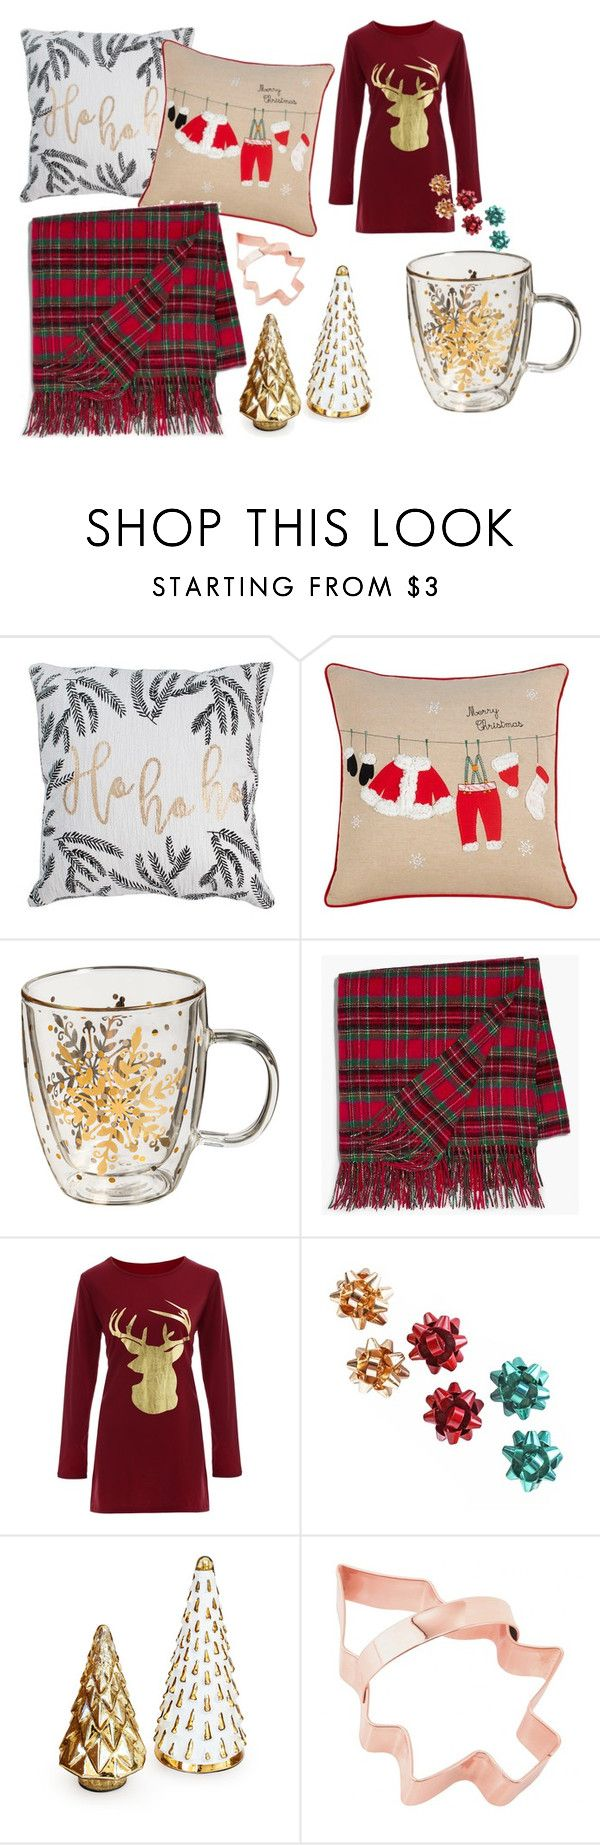 Merry Christmas by britney-lynn on Polyvore featuring interior, interiors, interior design, home, home decor, interior decorating, Rizzy Home and Talbots